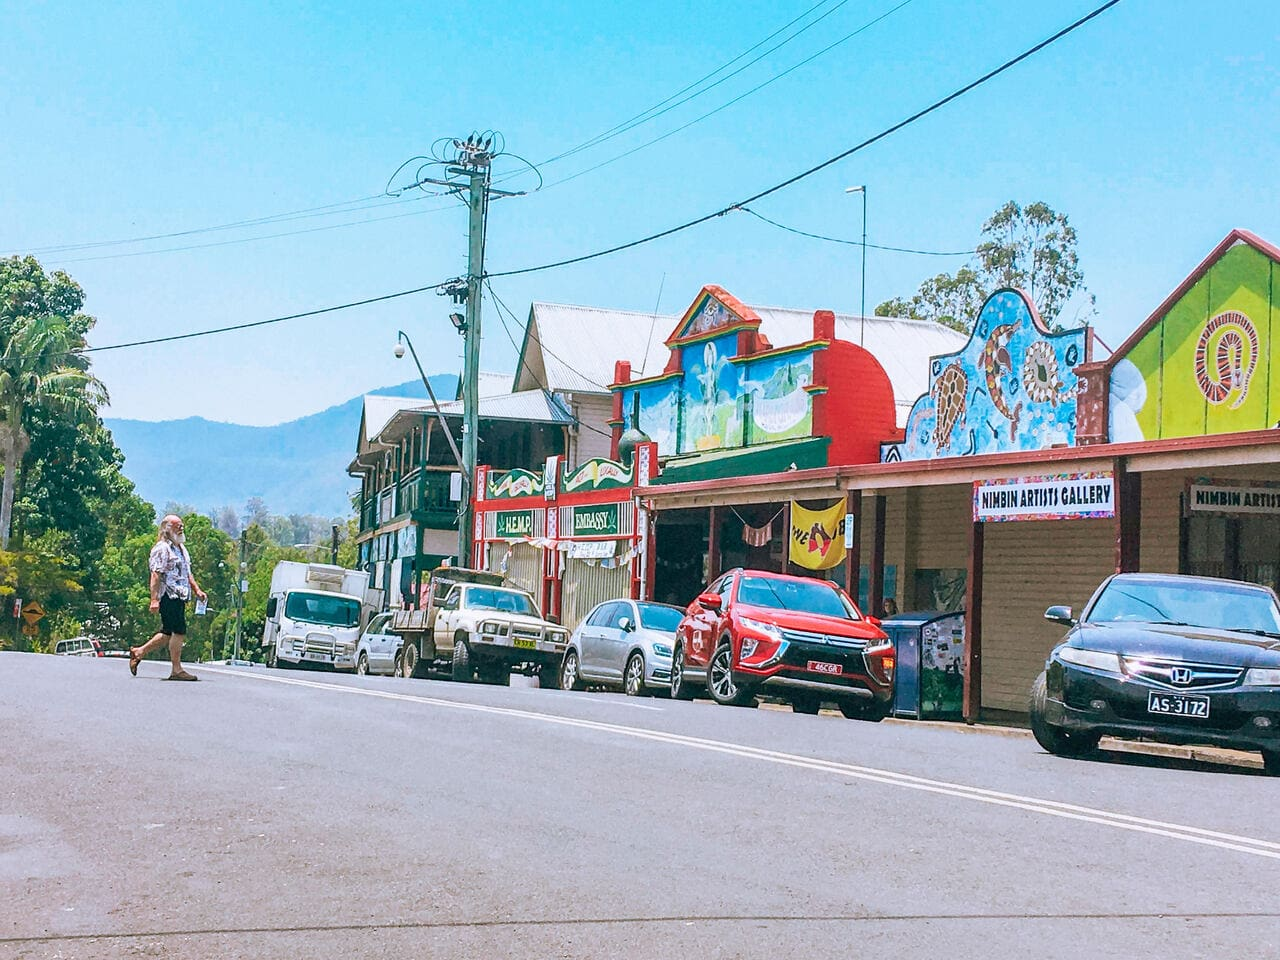 Nimbin in New South Wales Australia